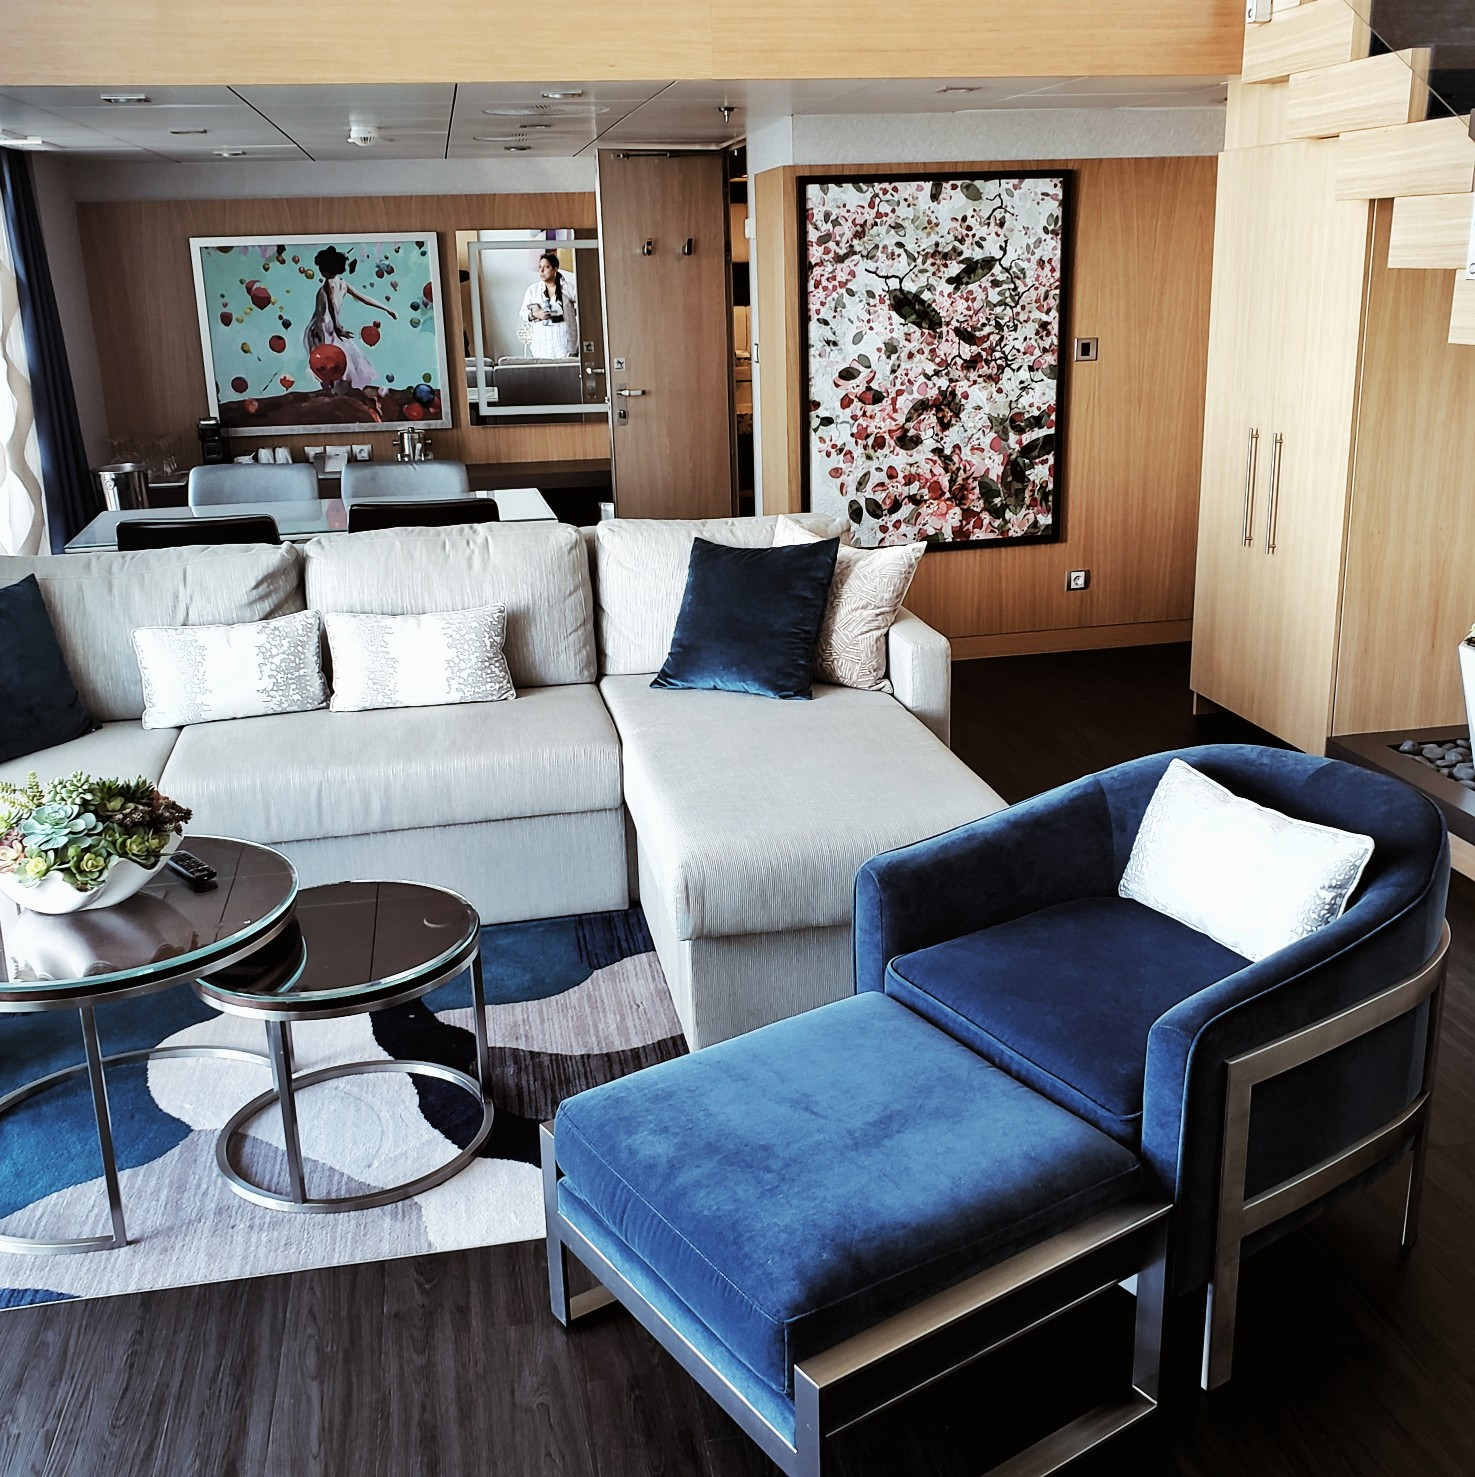 Royal Caribbean Symphony of the Seas Chic Star Loft Suite Decor